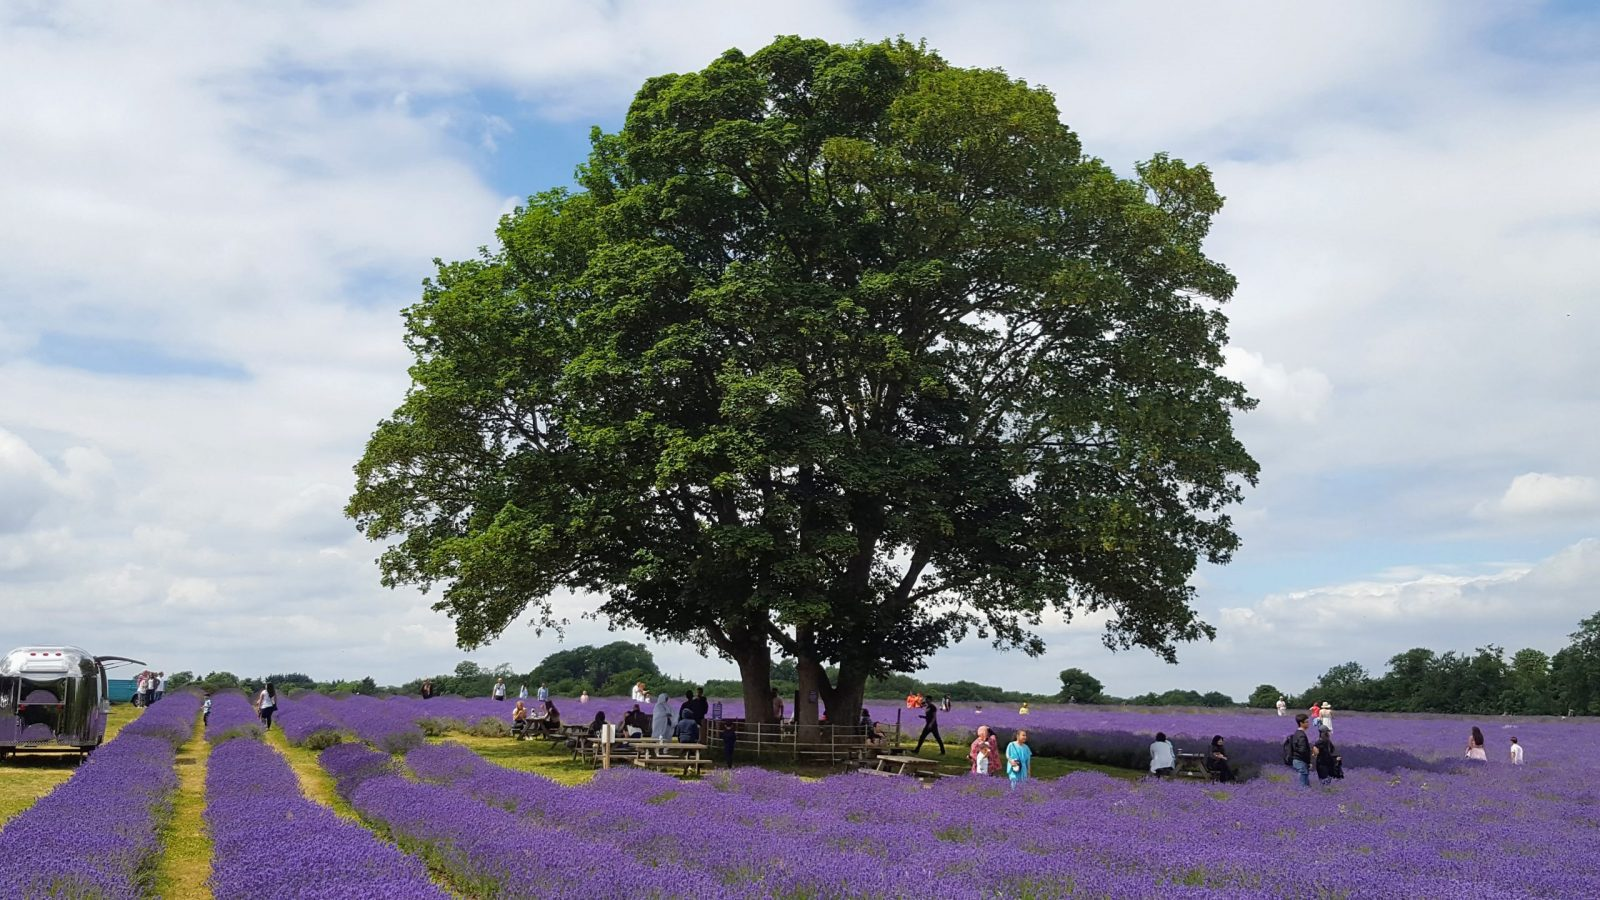 Huge old tree at Mayfield Lavender Farm